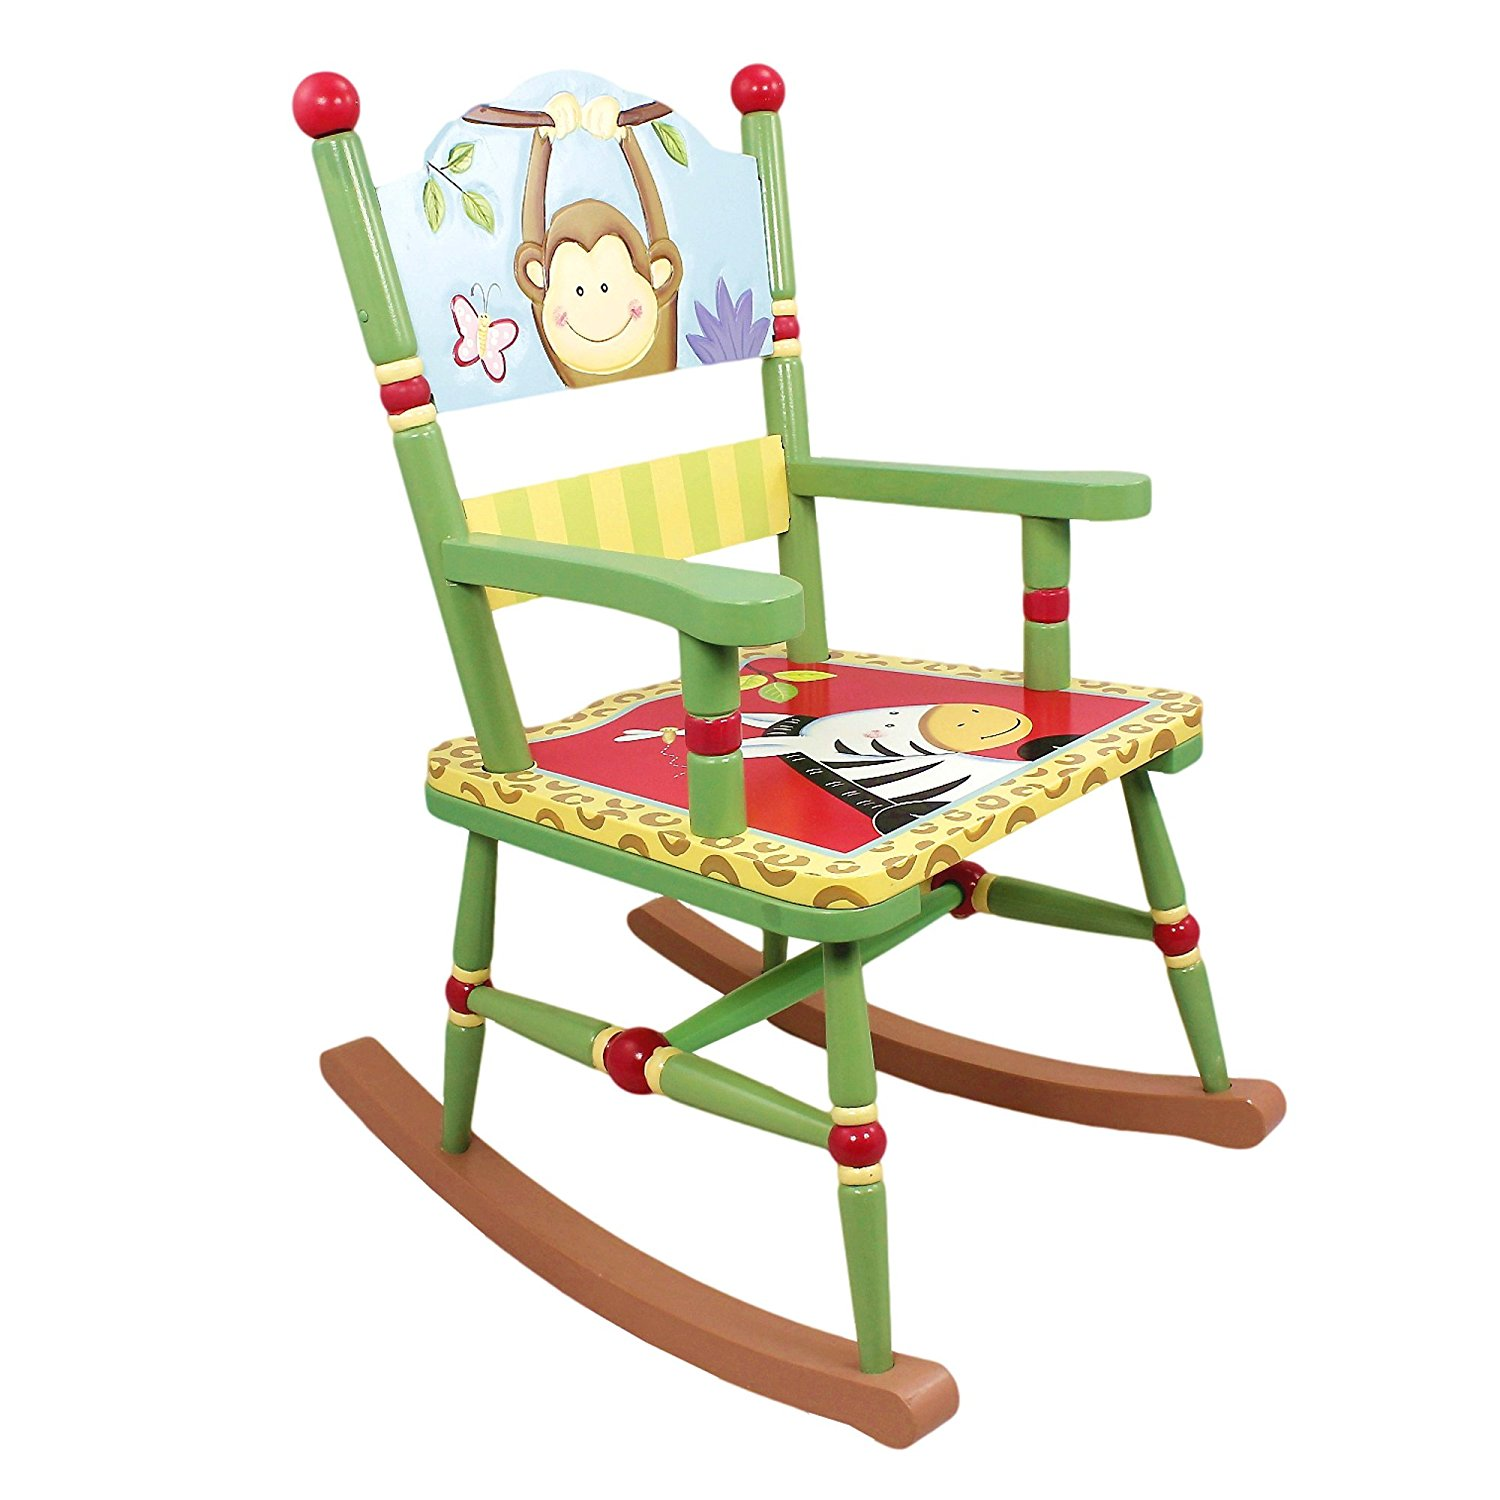 animal rocking chair bungee sports authority fantasy fields  sunny safari animals thematic kids wooden